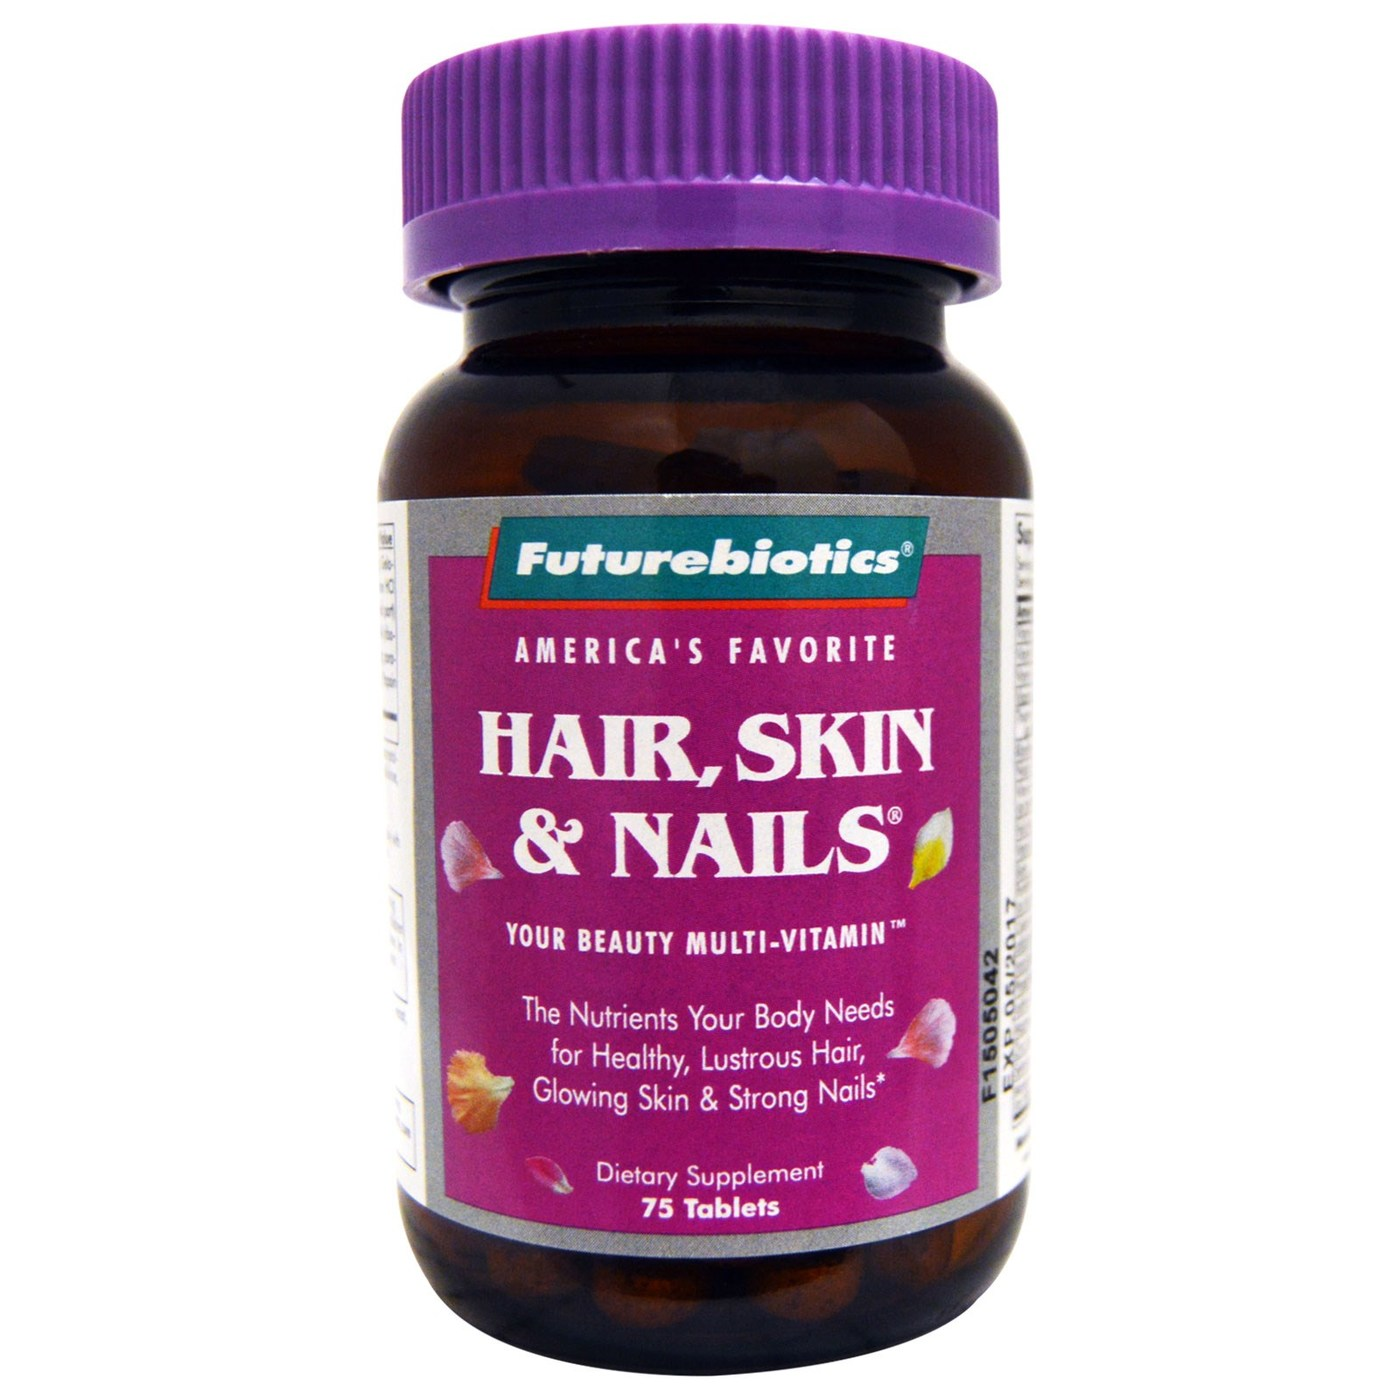 Futurebiotics Hair Skin Nails for Women - 75 Tablets ...